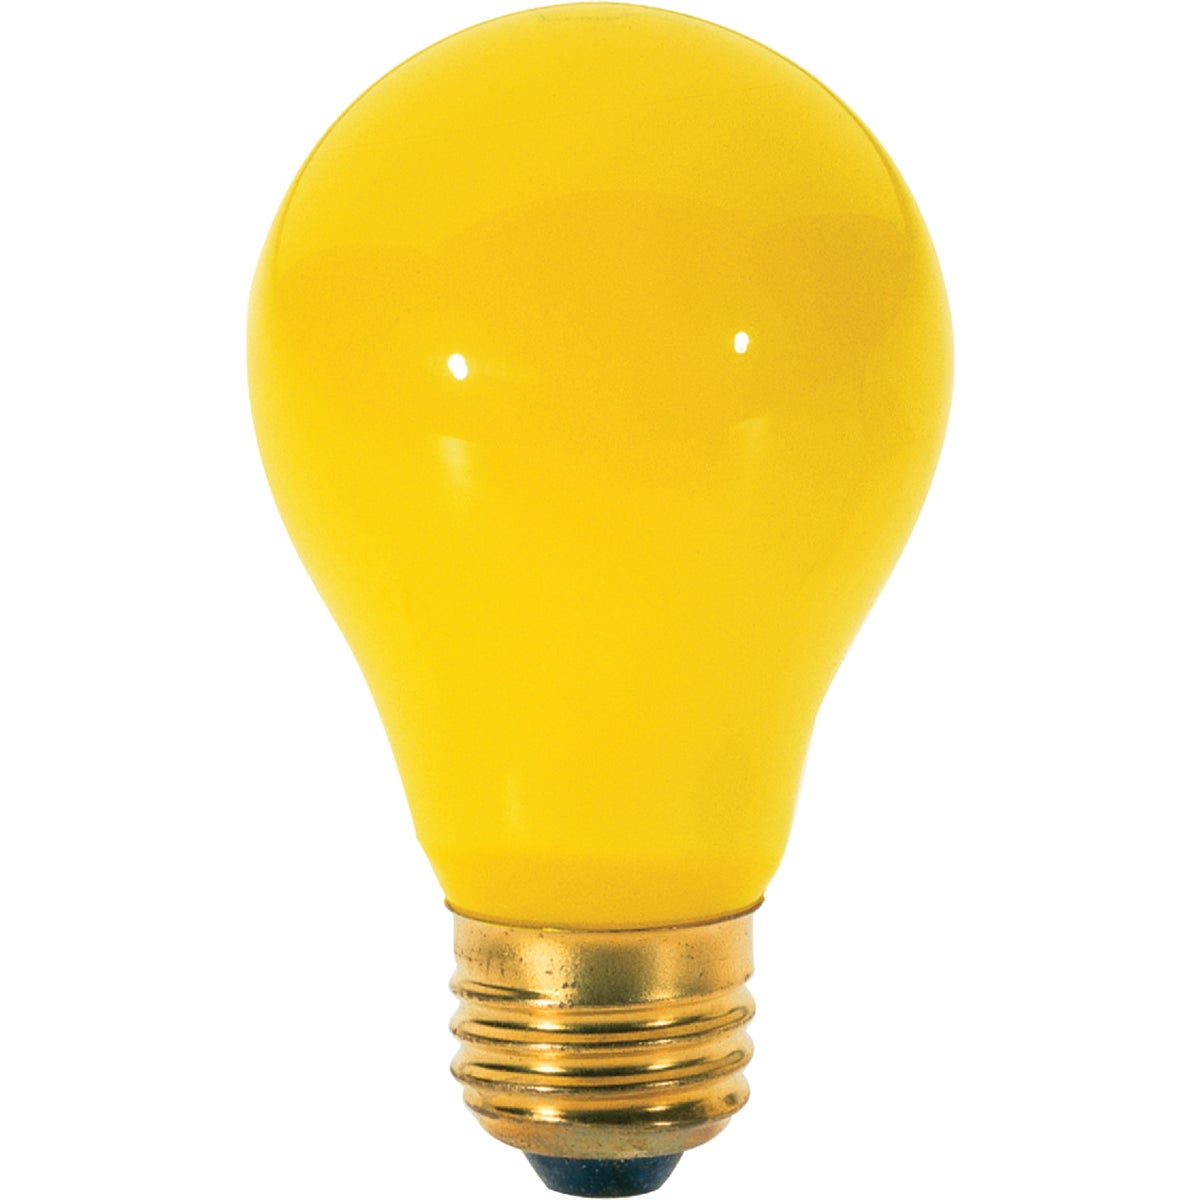 60W 2PK YEL BUG BULB - 97495 by G E Lighting